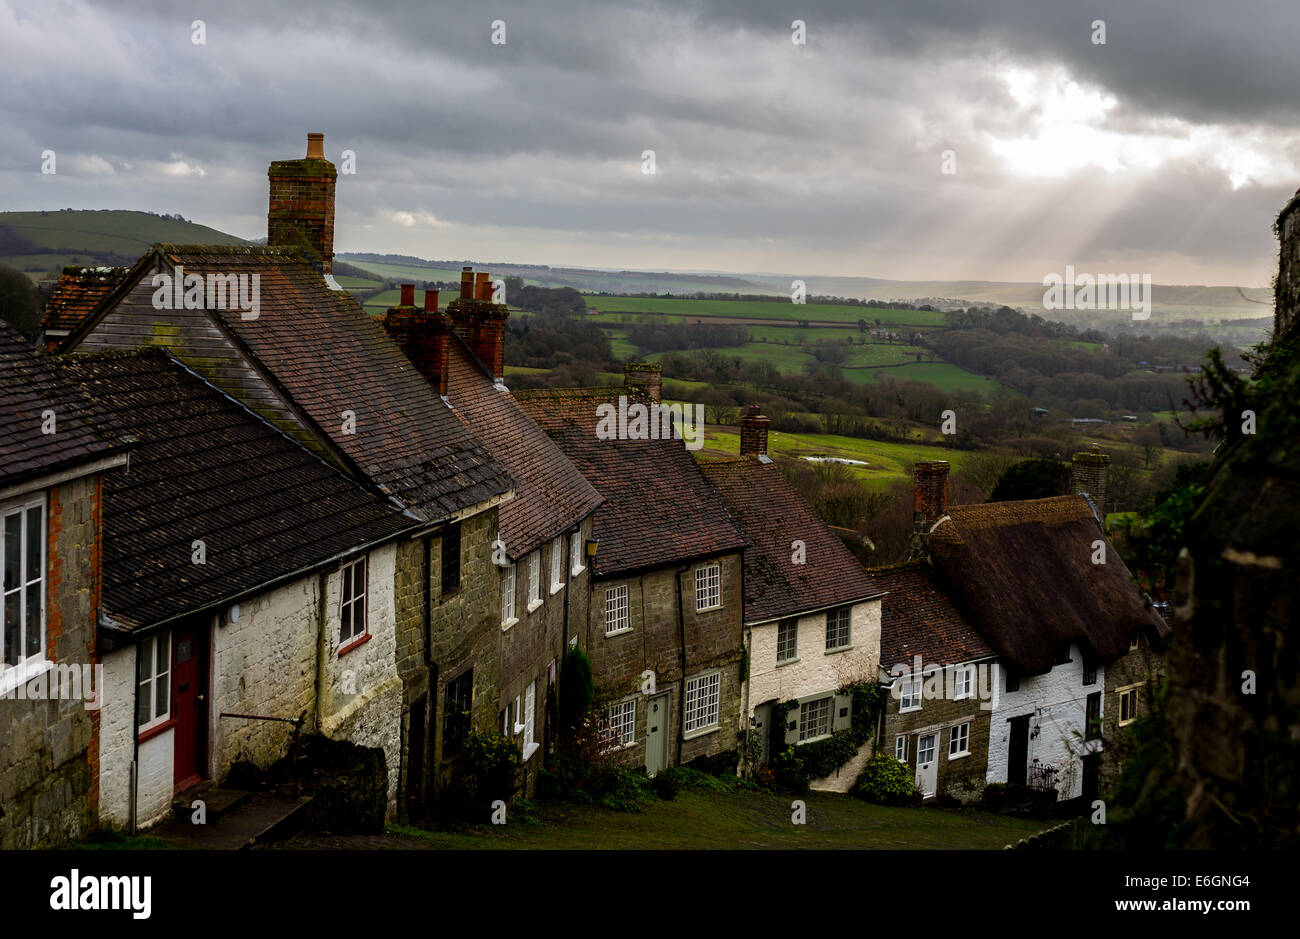 Old cottages on Gold Hill, Shaftesbury, Dorset, UK - Stock Image